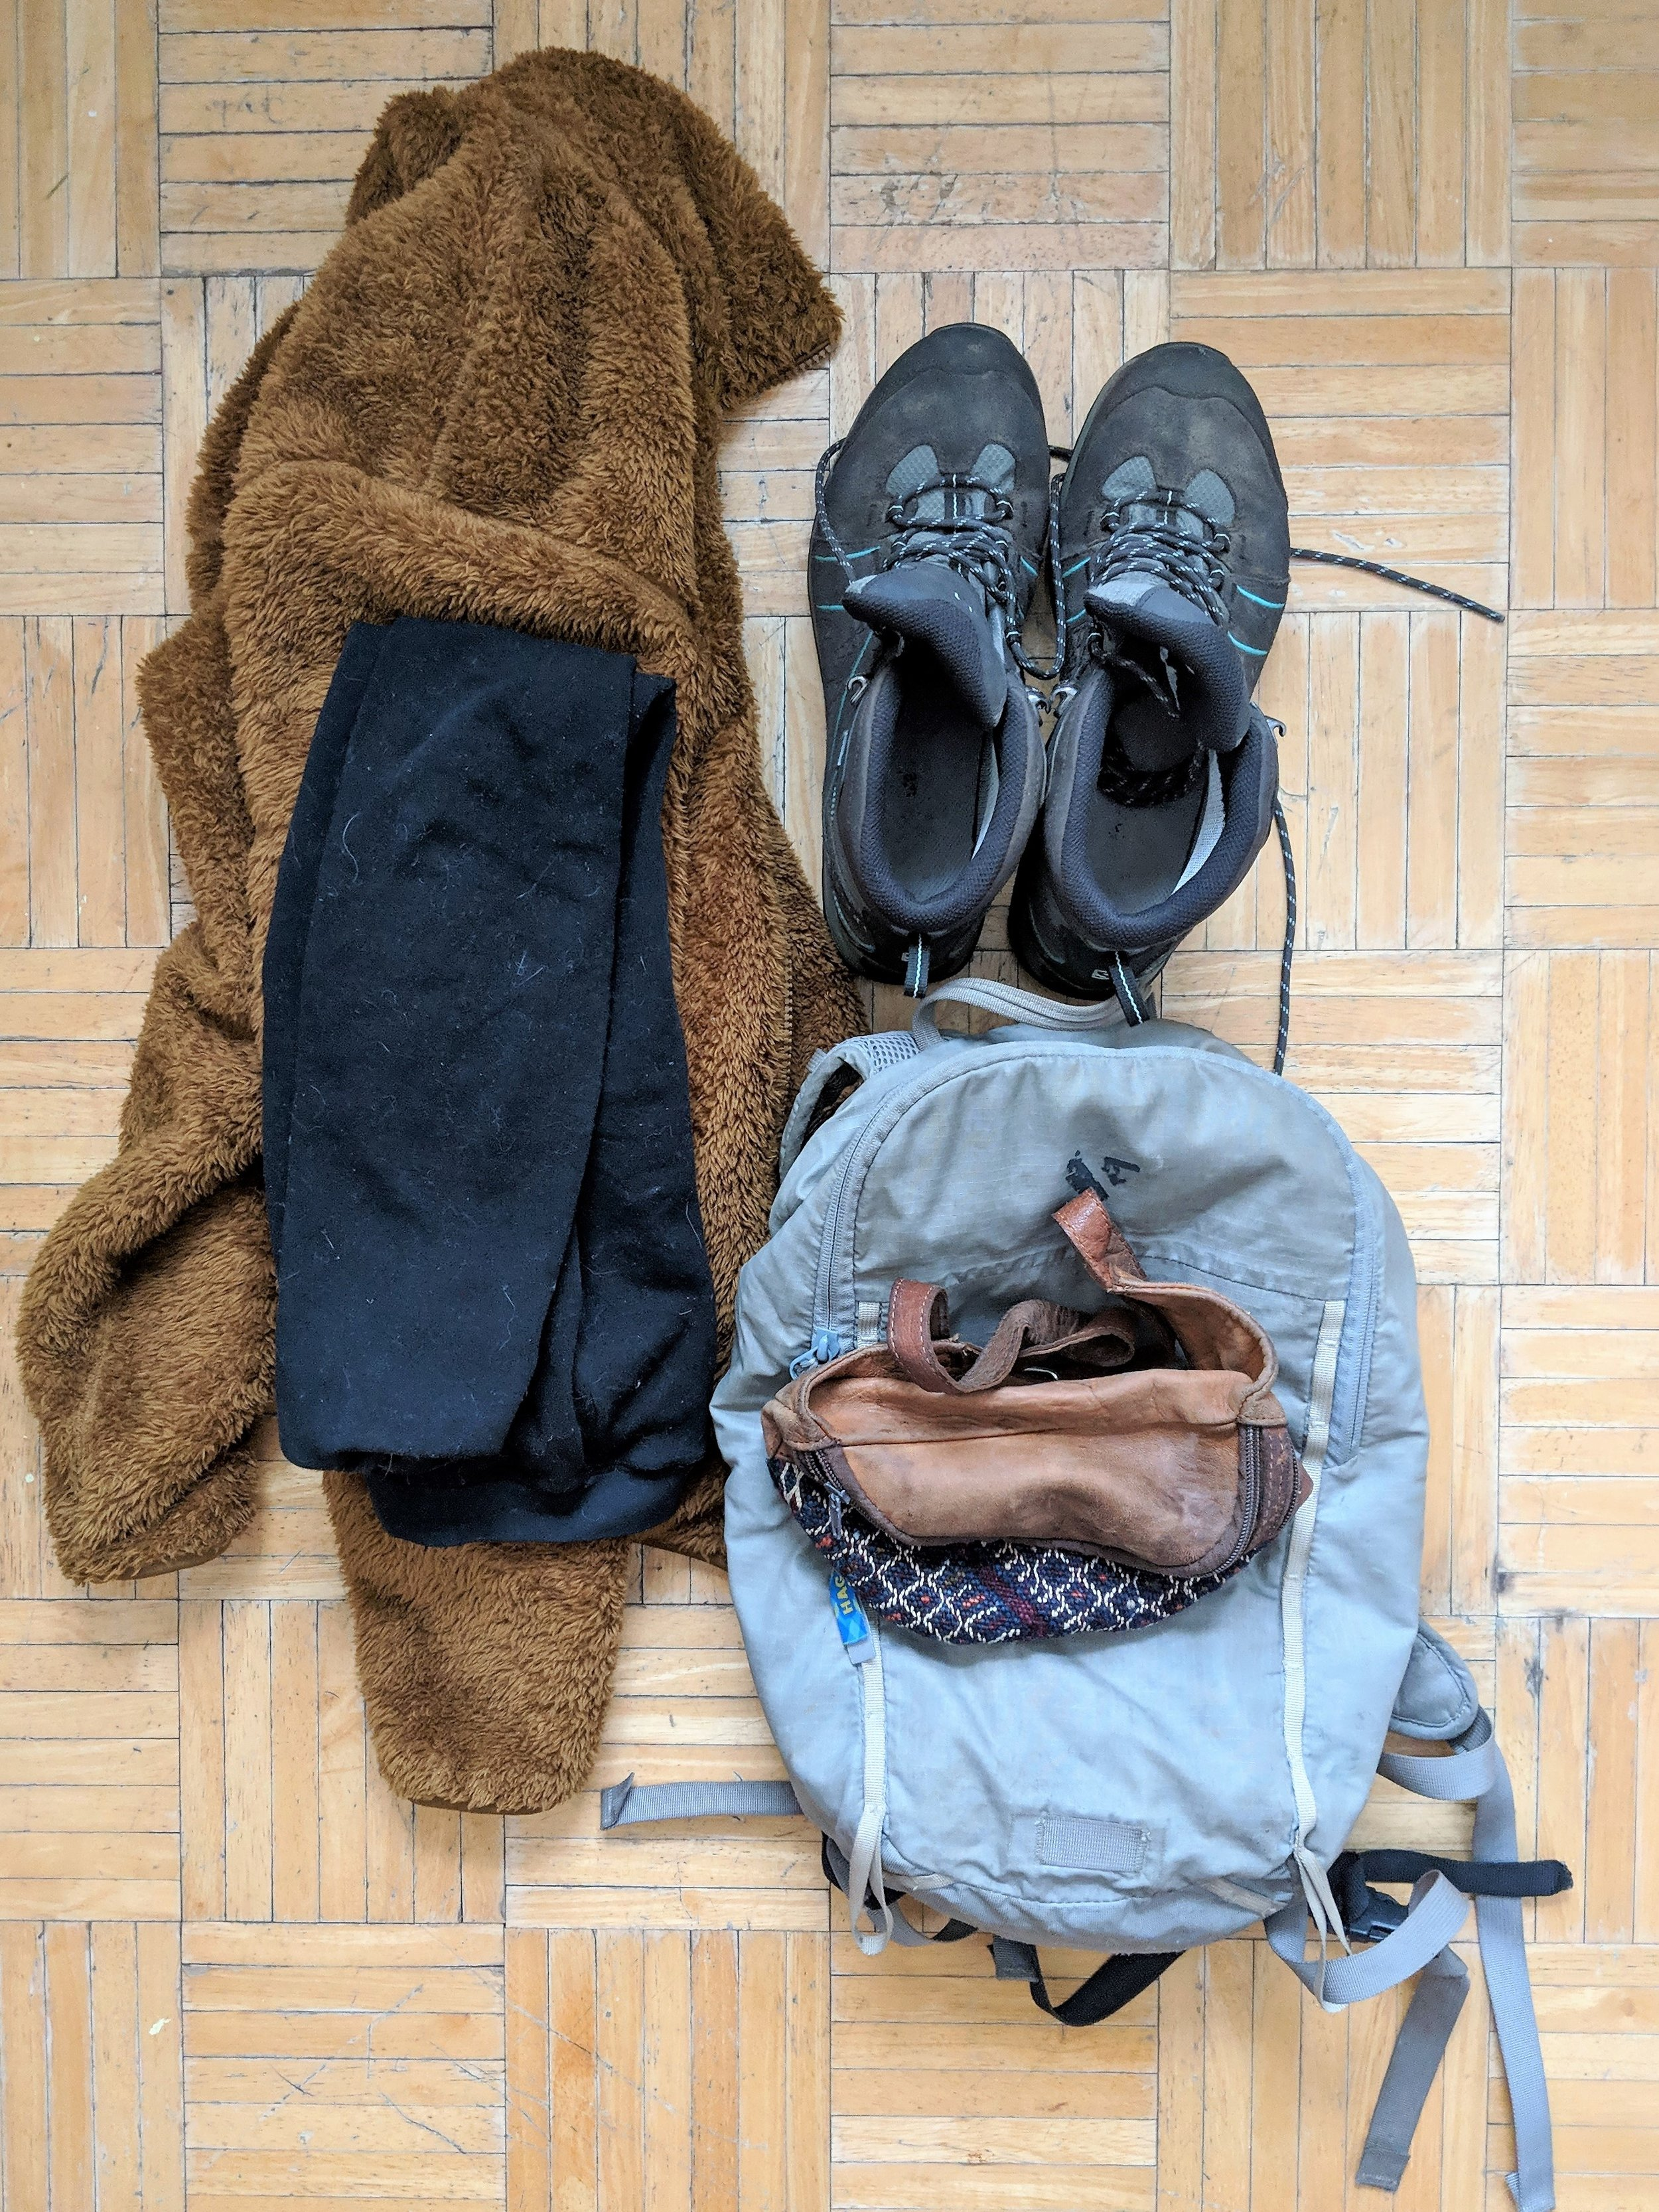 Plane gear. - On the plane I am all about comfort. I wear thermal leggings, a turtle neck and fuzzy zip up sweater - all from Uniqlo. I wear my hiking boots, a fanny pack/ bum bag, and my small day pack of essentials.